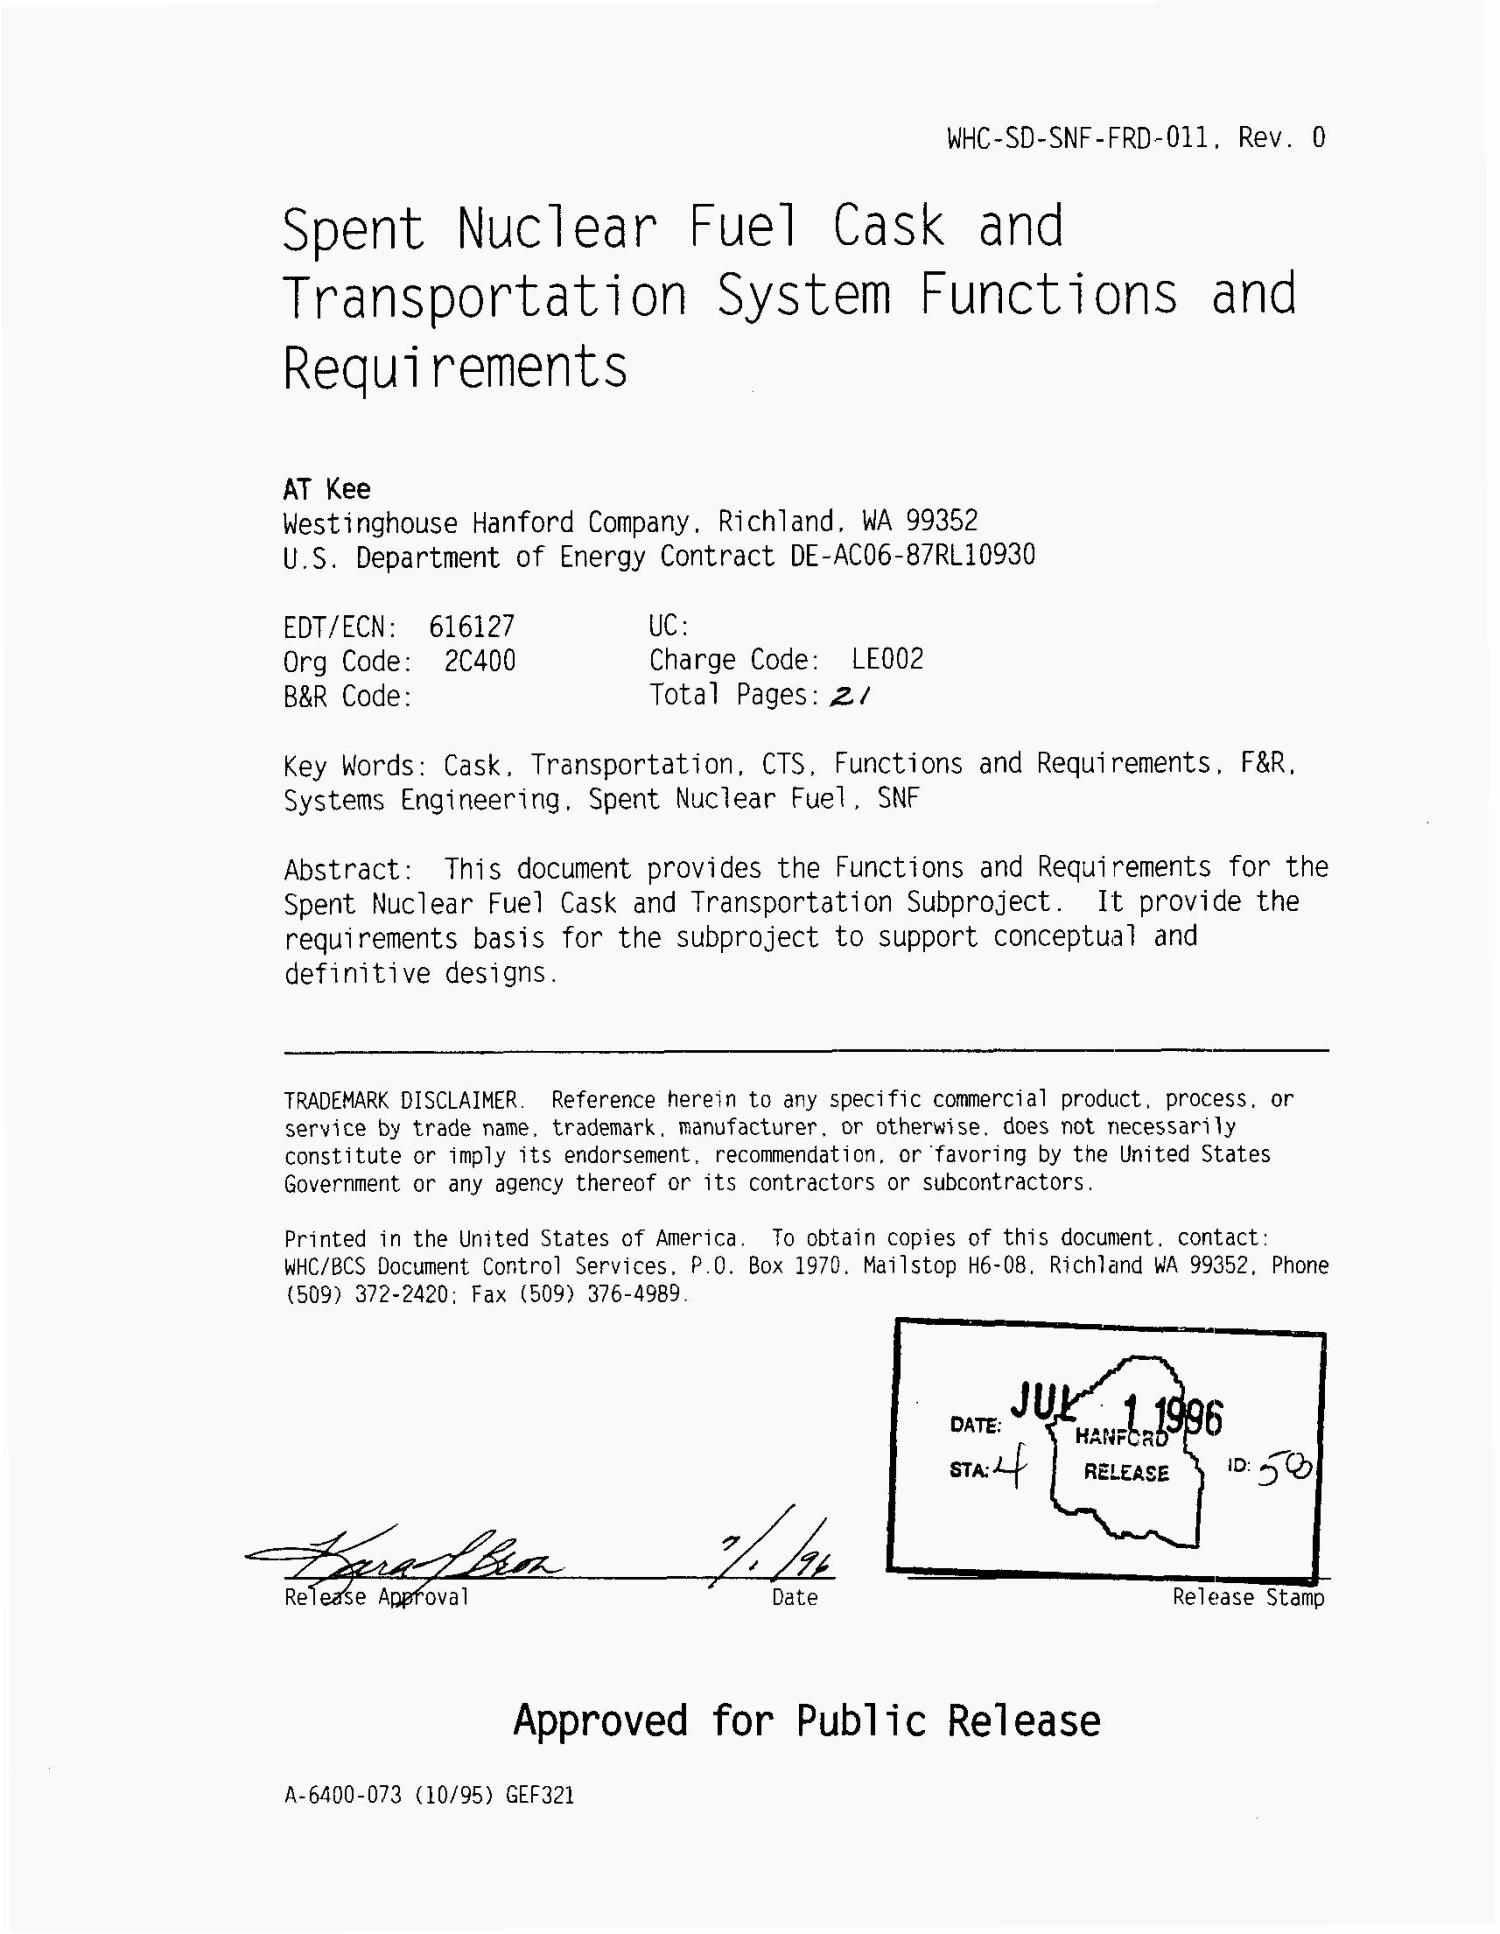 Spent nuclear fuel cask and transportation system functions and requirements                                                                                                      [Sequence #]: 2 of 22